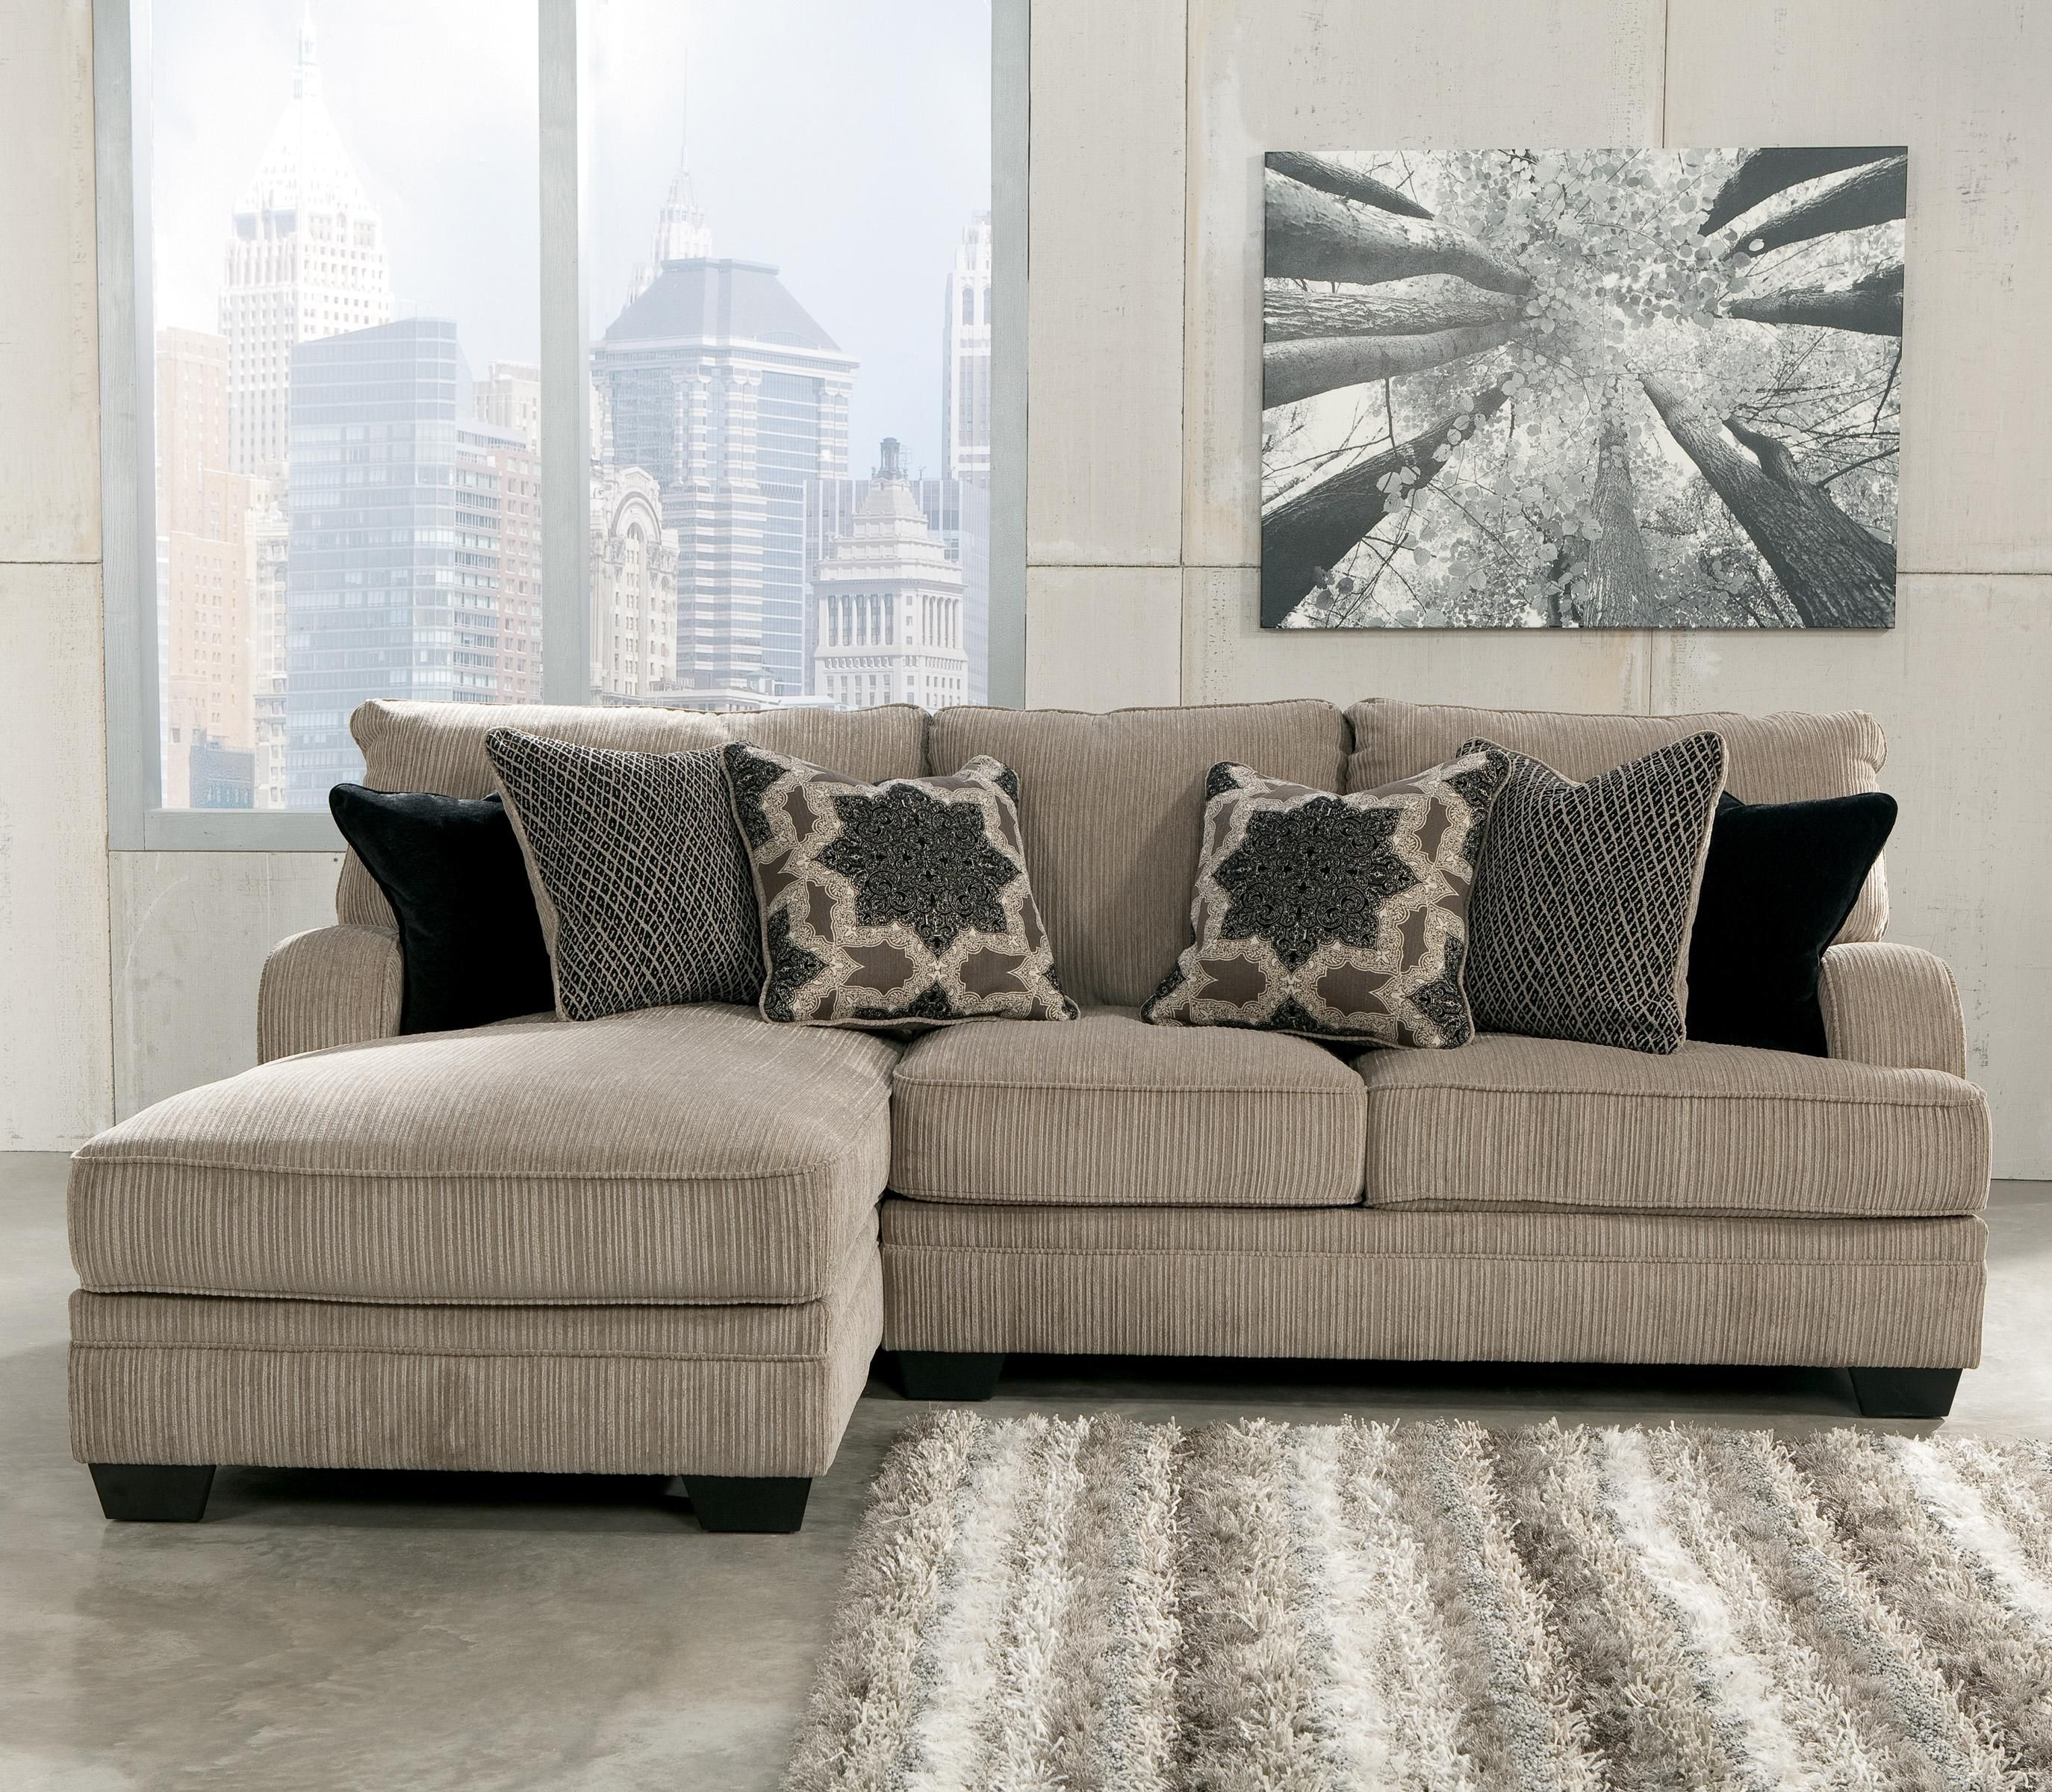 Katisha platinum 2 piece sectional with left chaise by for Ashley chaise lounge